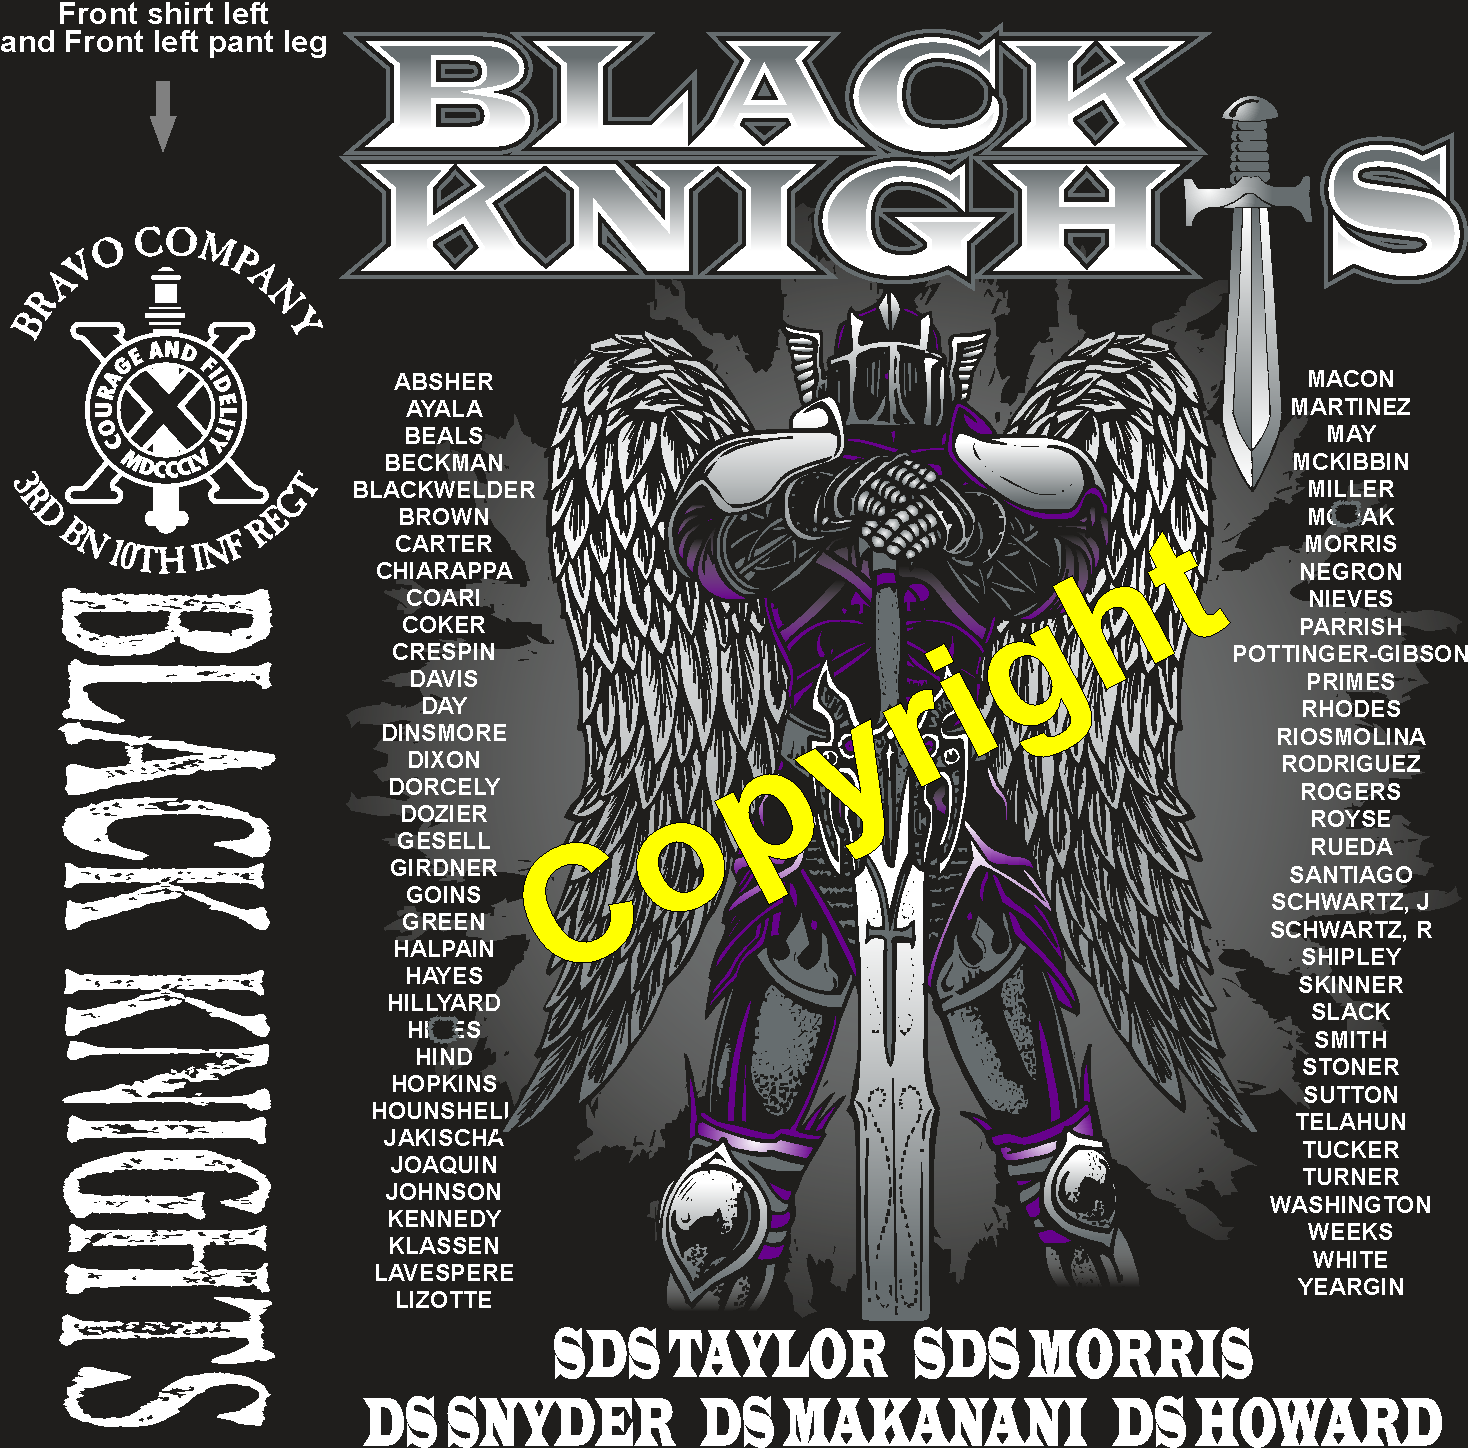 BRAVO 310 BLACK KNIGHTS GRADUATING DAY 8-9-2018 digital